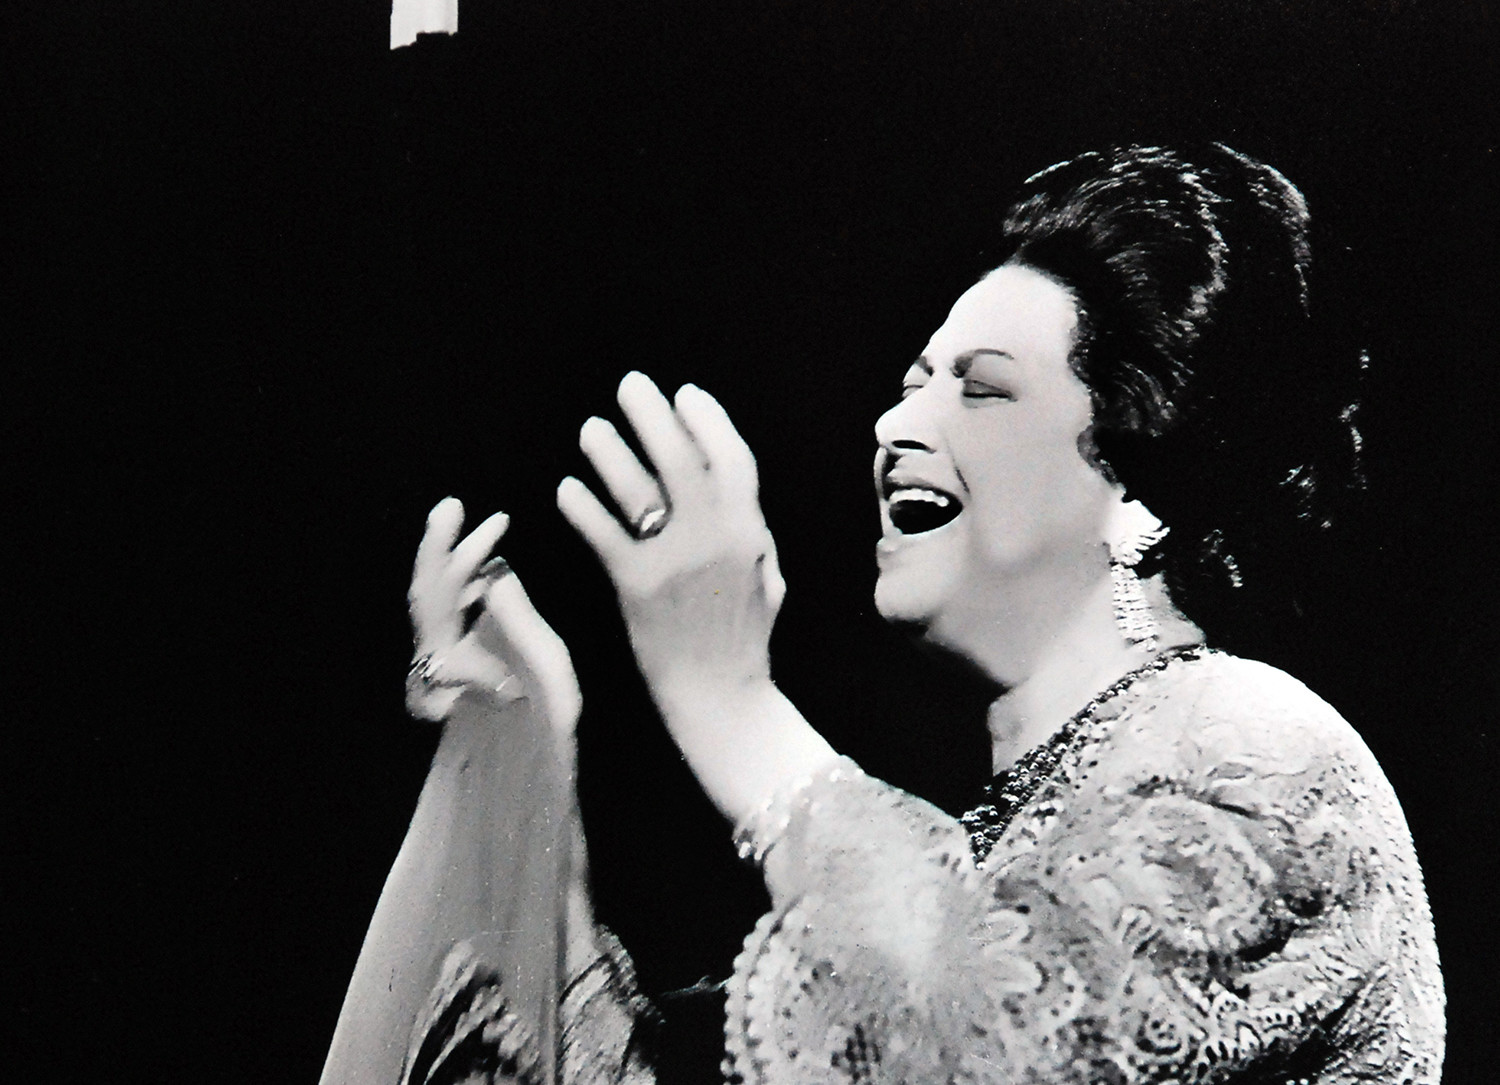 Institut du monde arabe : Divas, from Oum Kalthoum to Dalida - The Eye of Photography Magazine